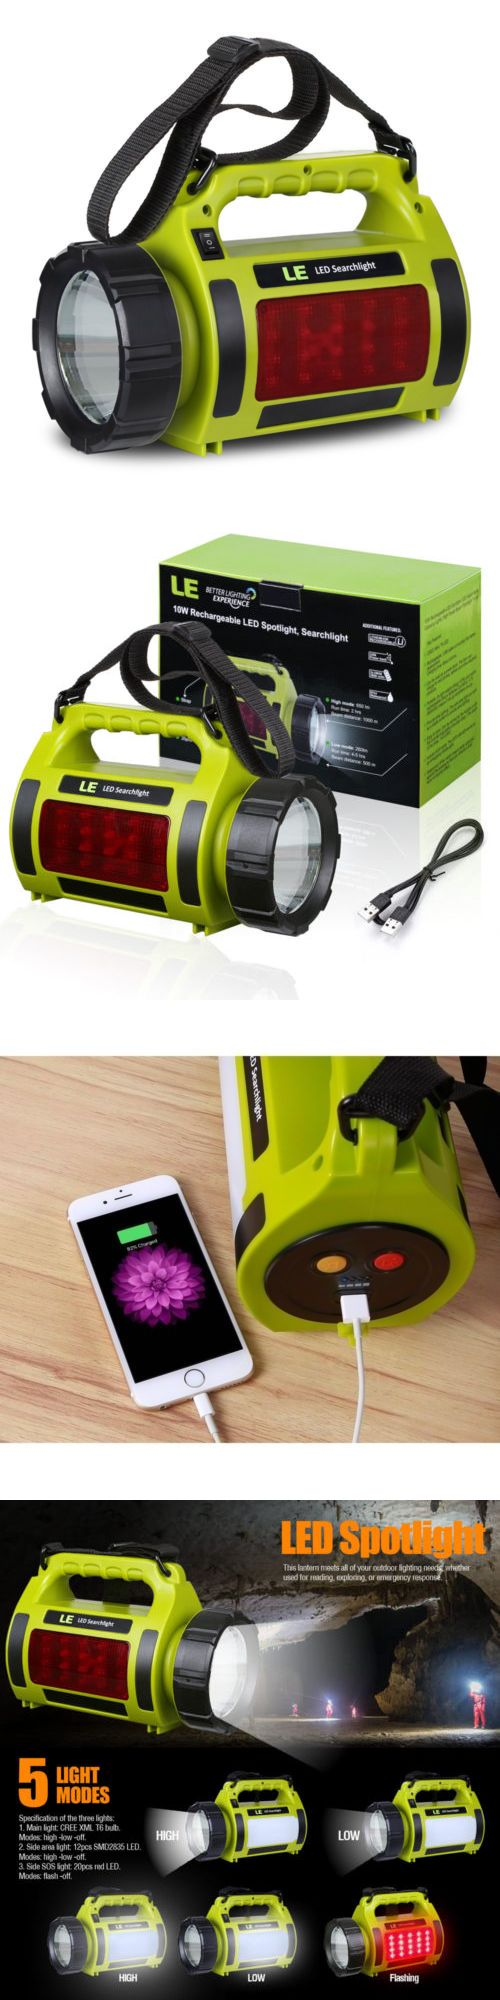 Lanterns 168867: Rechargeable 10W Cree T6 Led Spotlight Flashlight Hand Torch Camping Lamp 18650 -> BUY IT NOW ONLY: $32.3 on eBay!